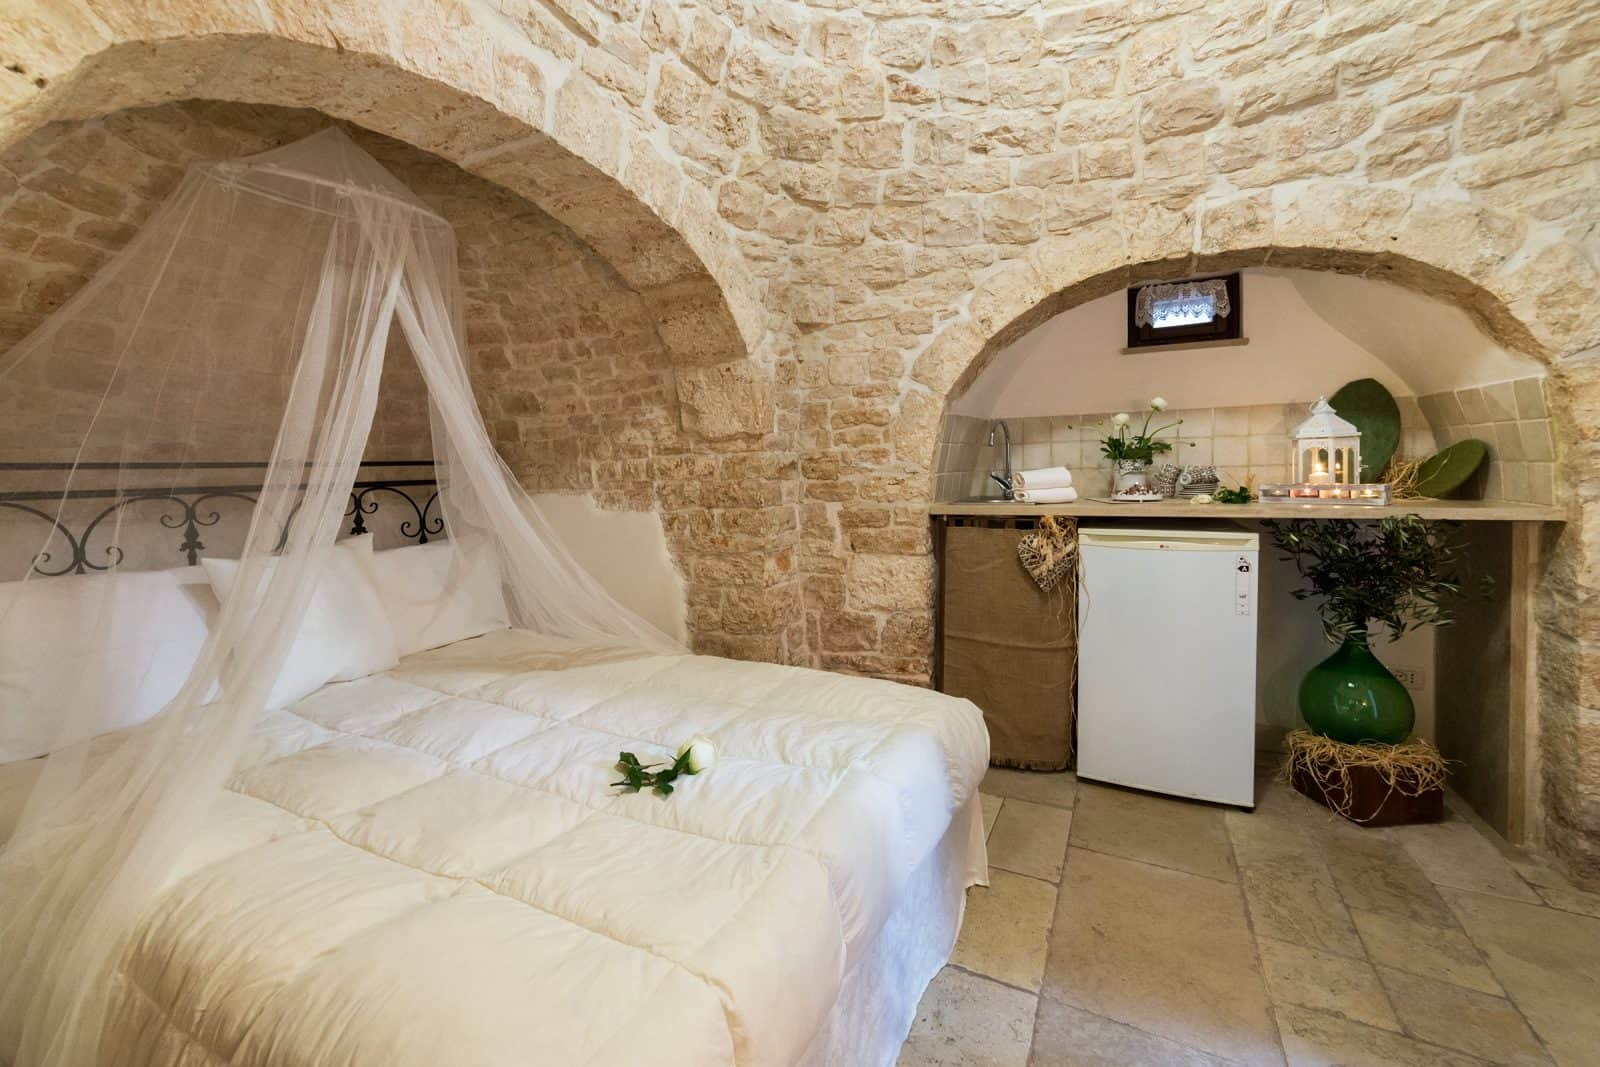 trulli family bed breakfast casa vacanze alberobello